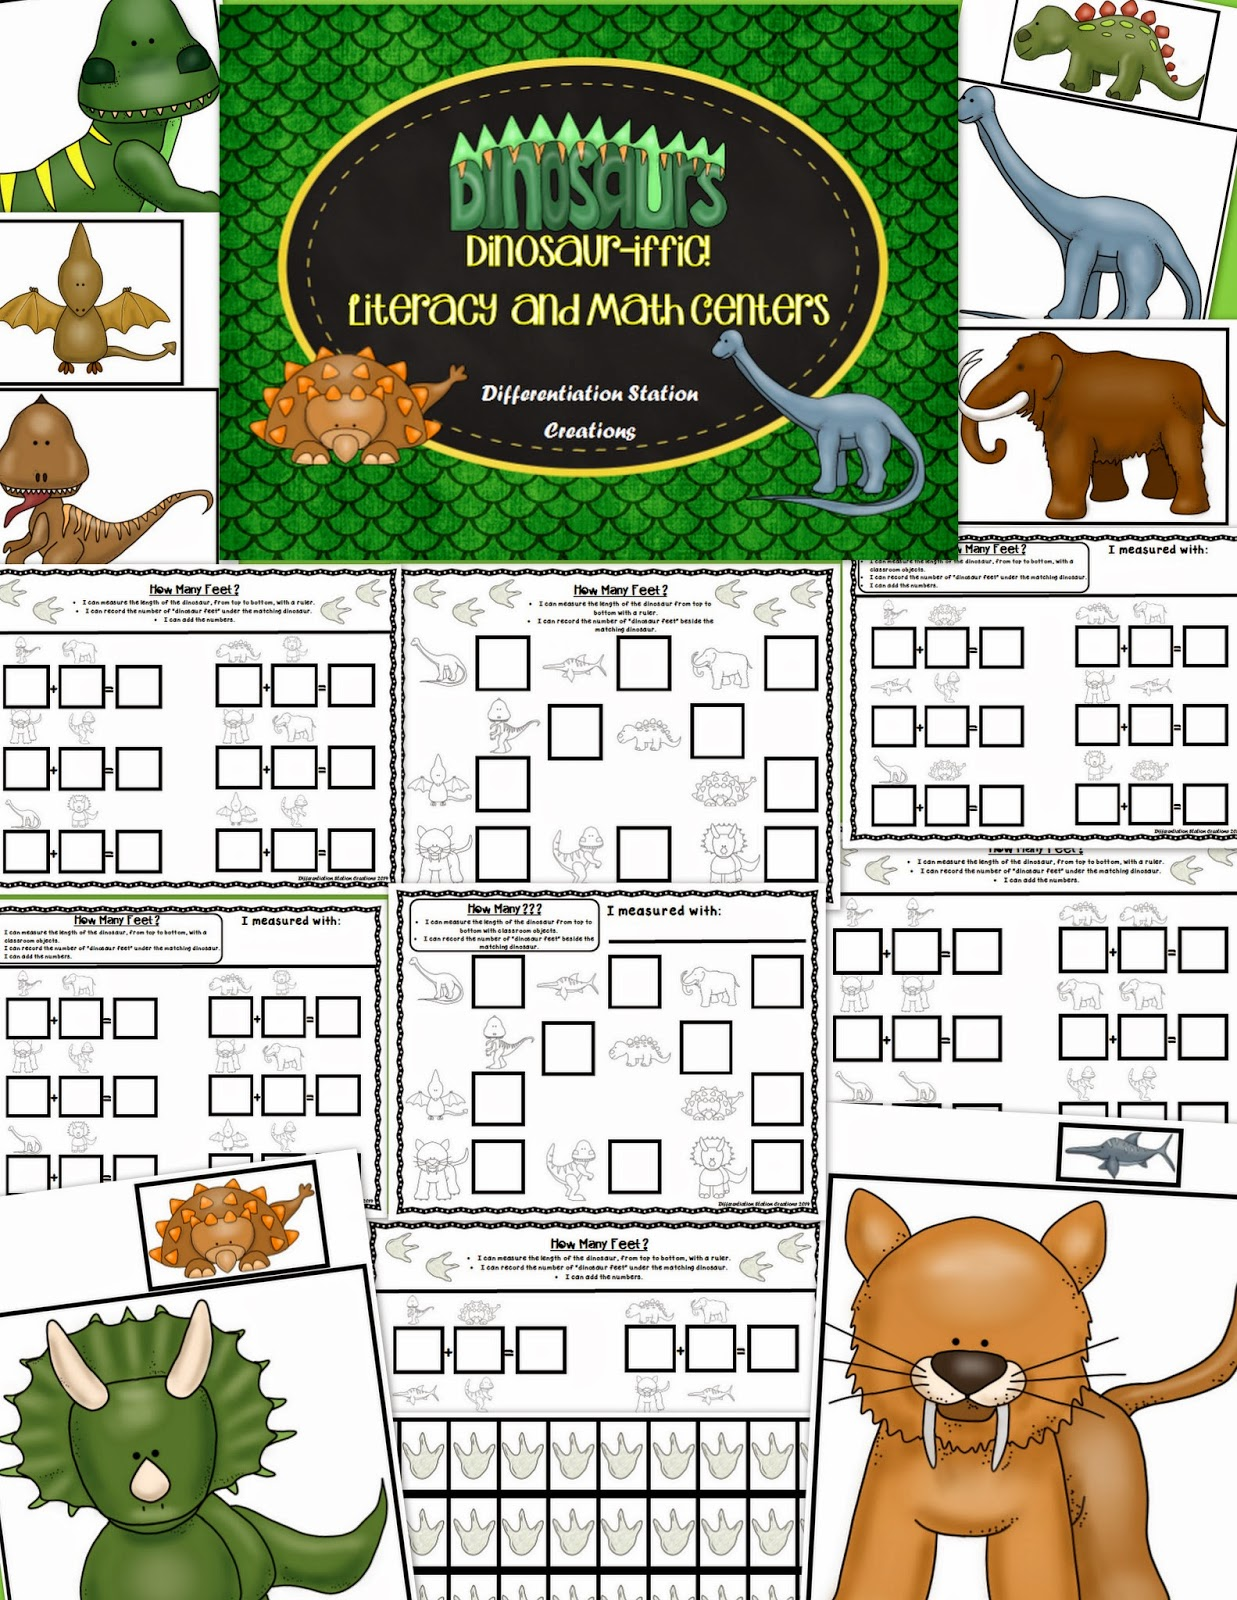 http://www.teacherspayteachers.com/Product/Dinosaur-Math-Centers-Measurement-Addition-Subtraction-Ten-Frames-1269142